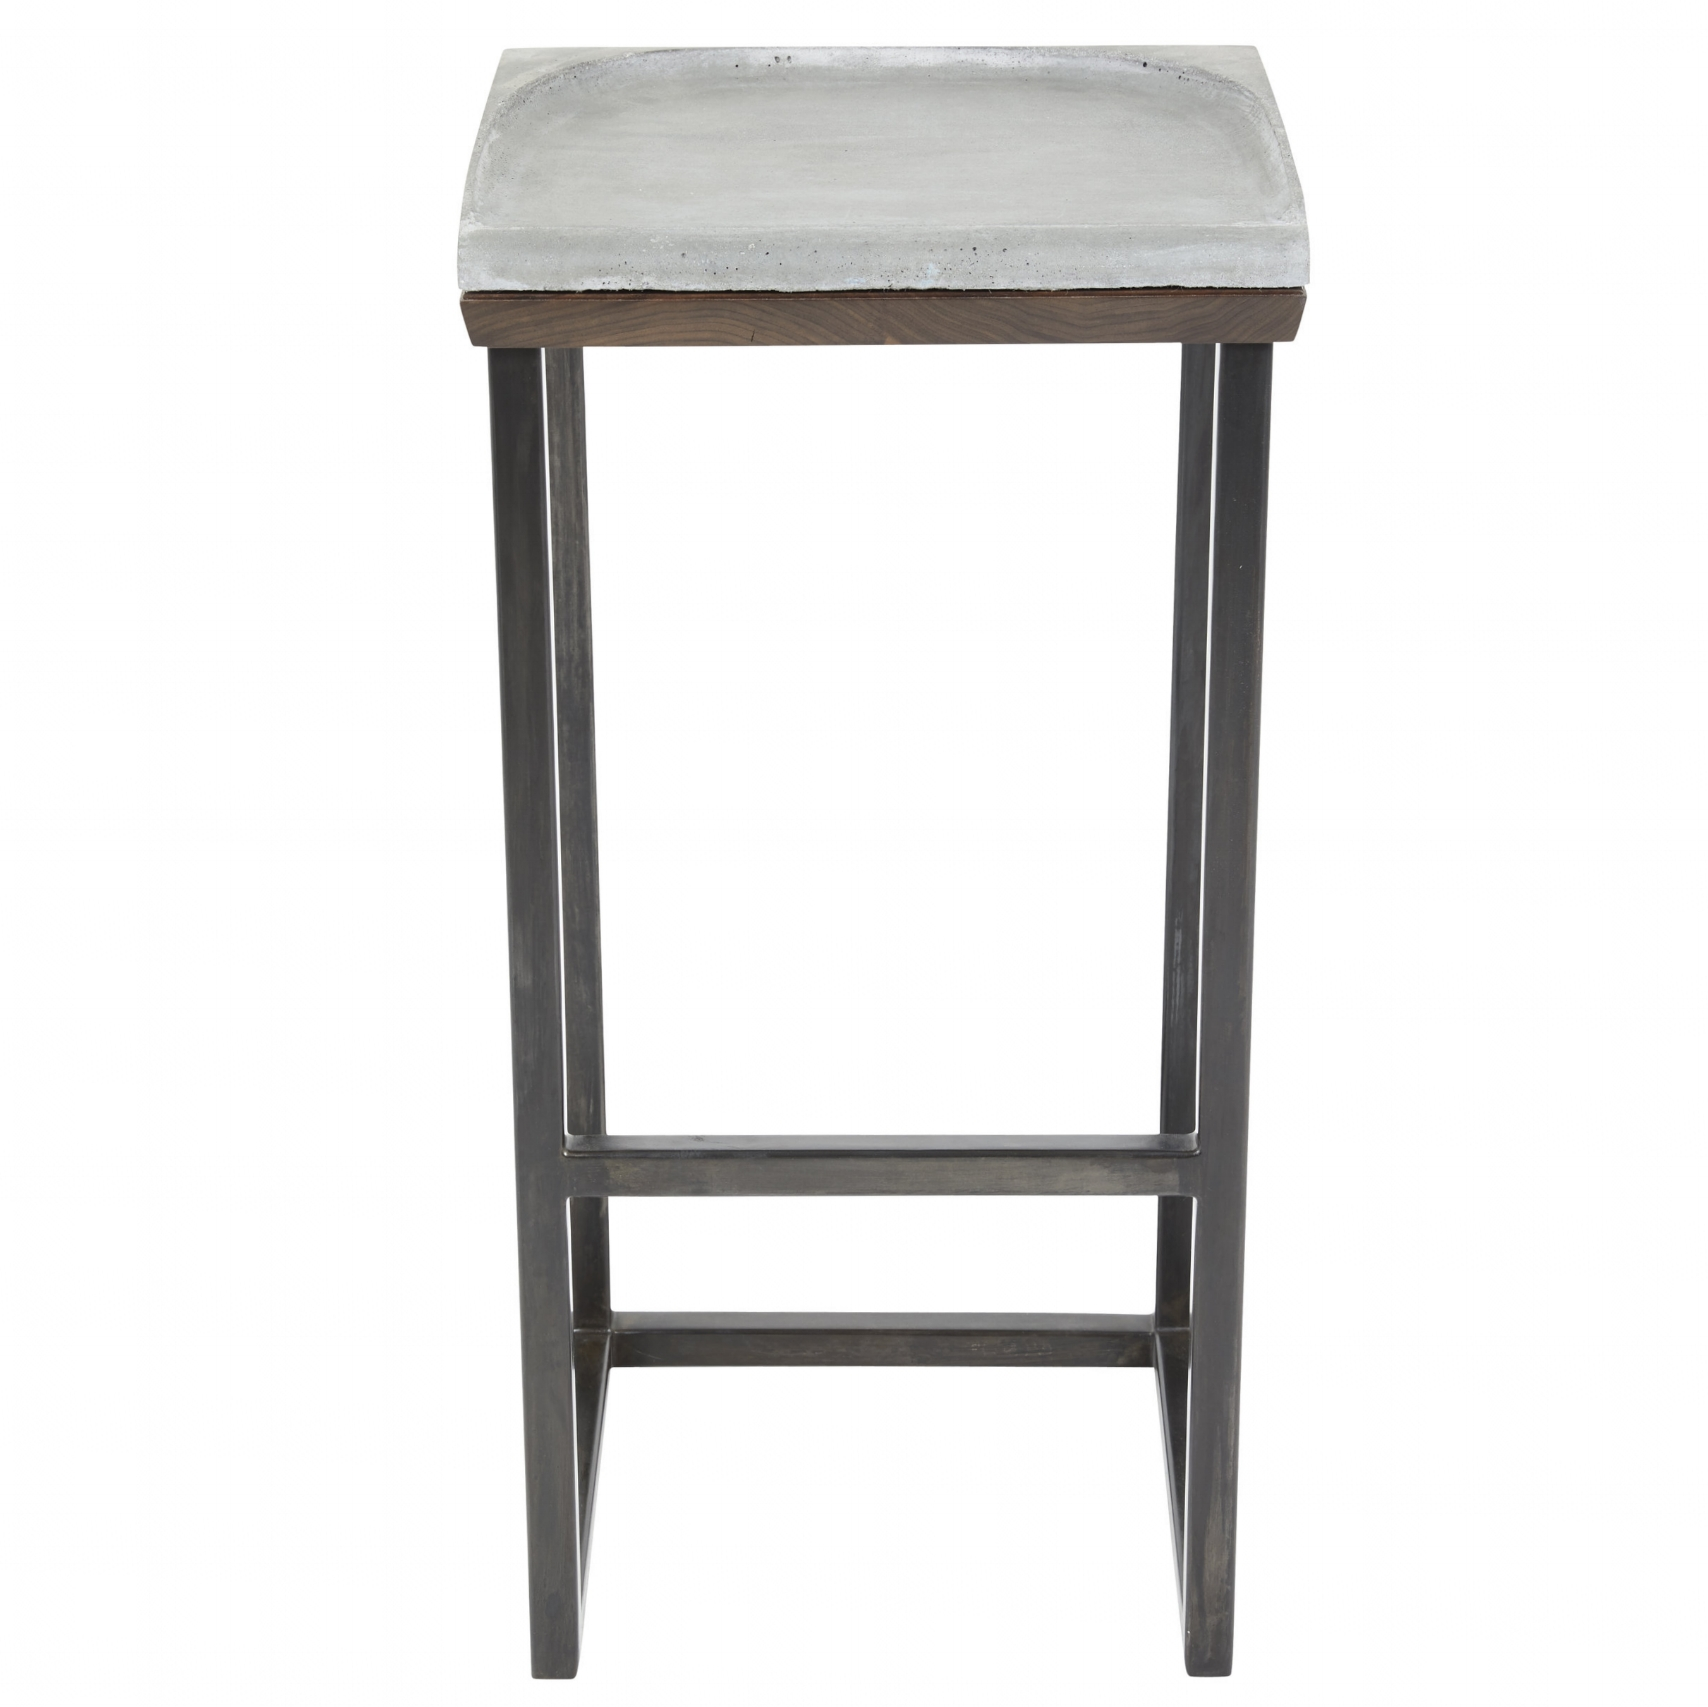 Concrete_Stool_025.jpg